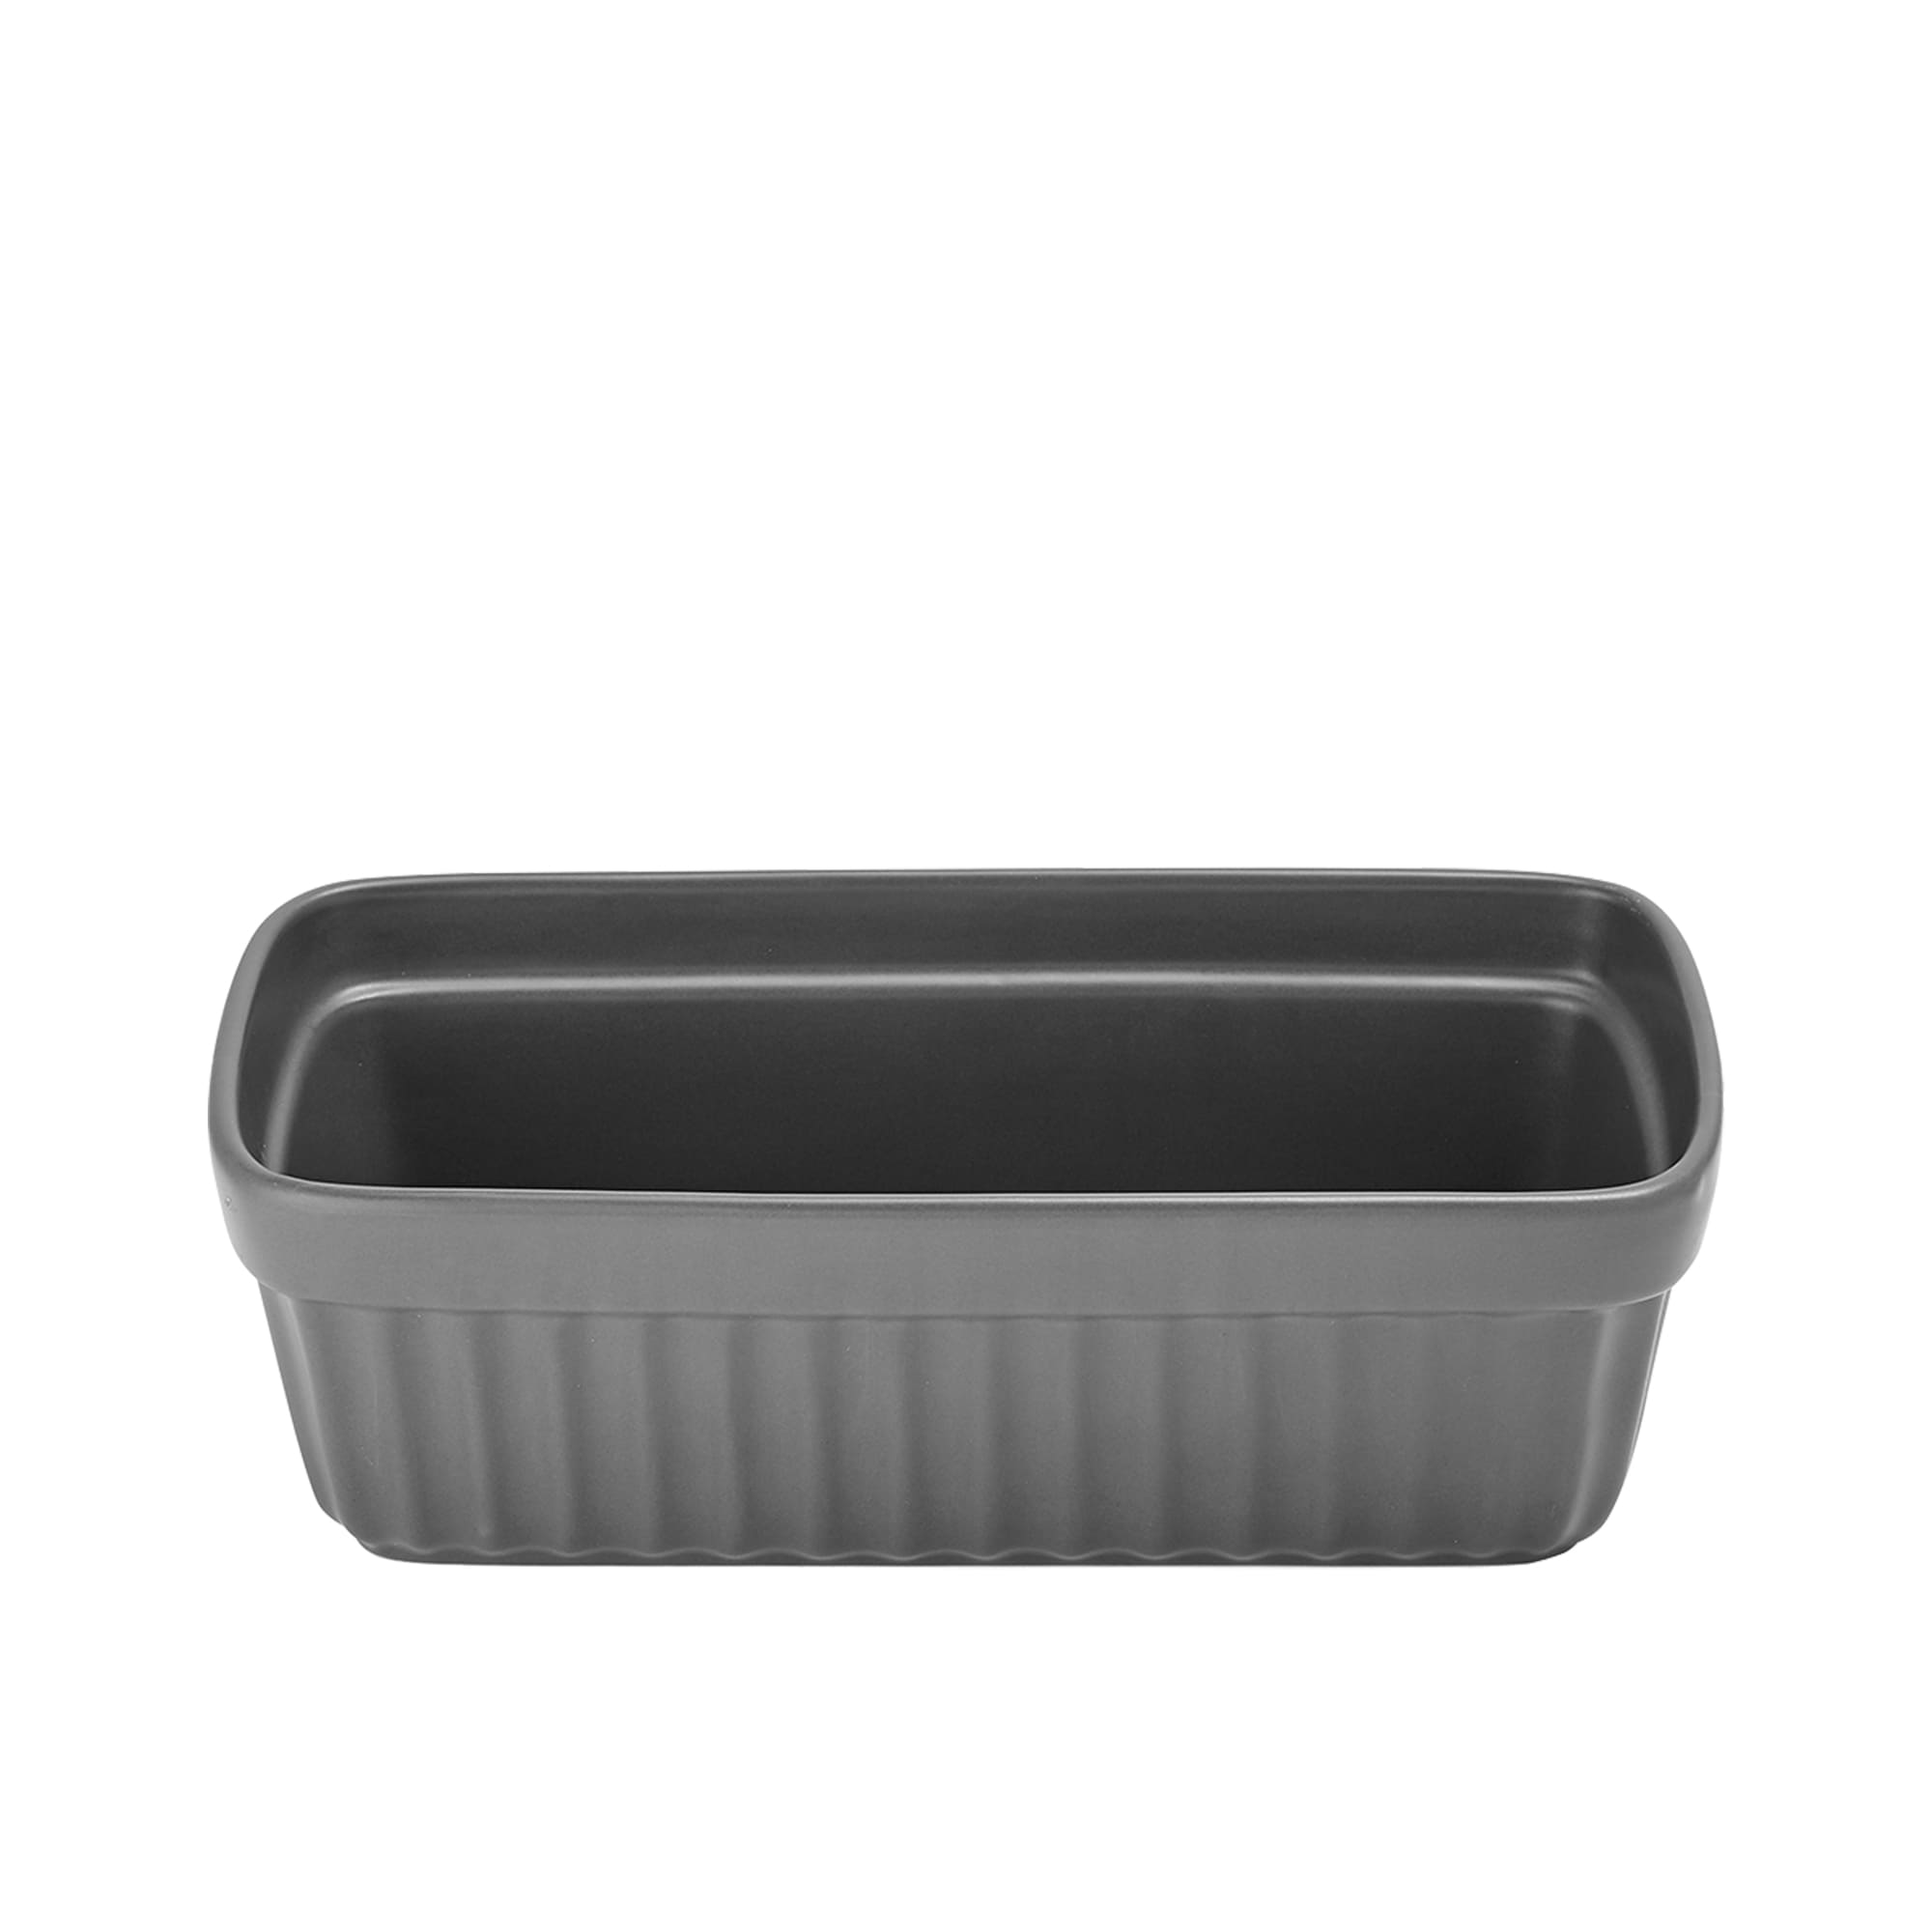 Ladelle Abode Loaf Baking Dish 26x14x9cm Charcoal